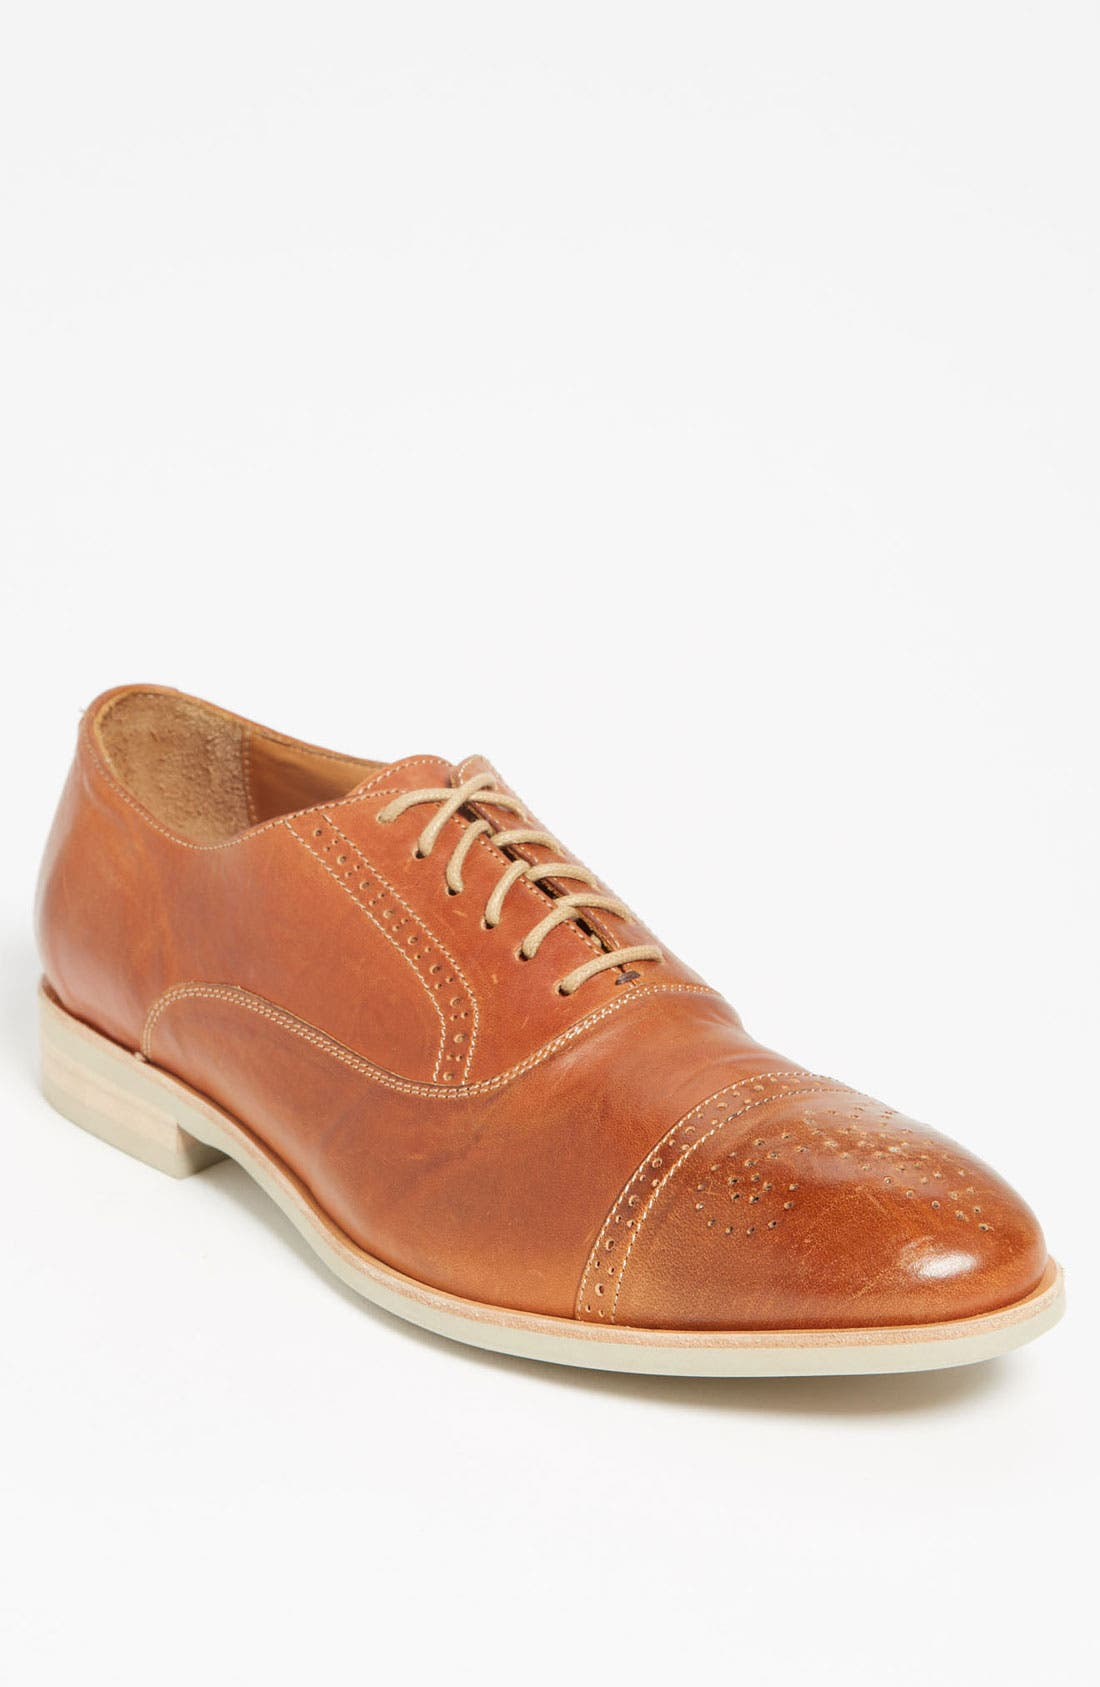 Alternate Image 1 Selected - Maison Forte 'Hyeres' Cap Toe Oxford